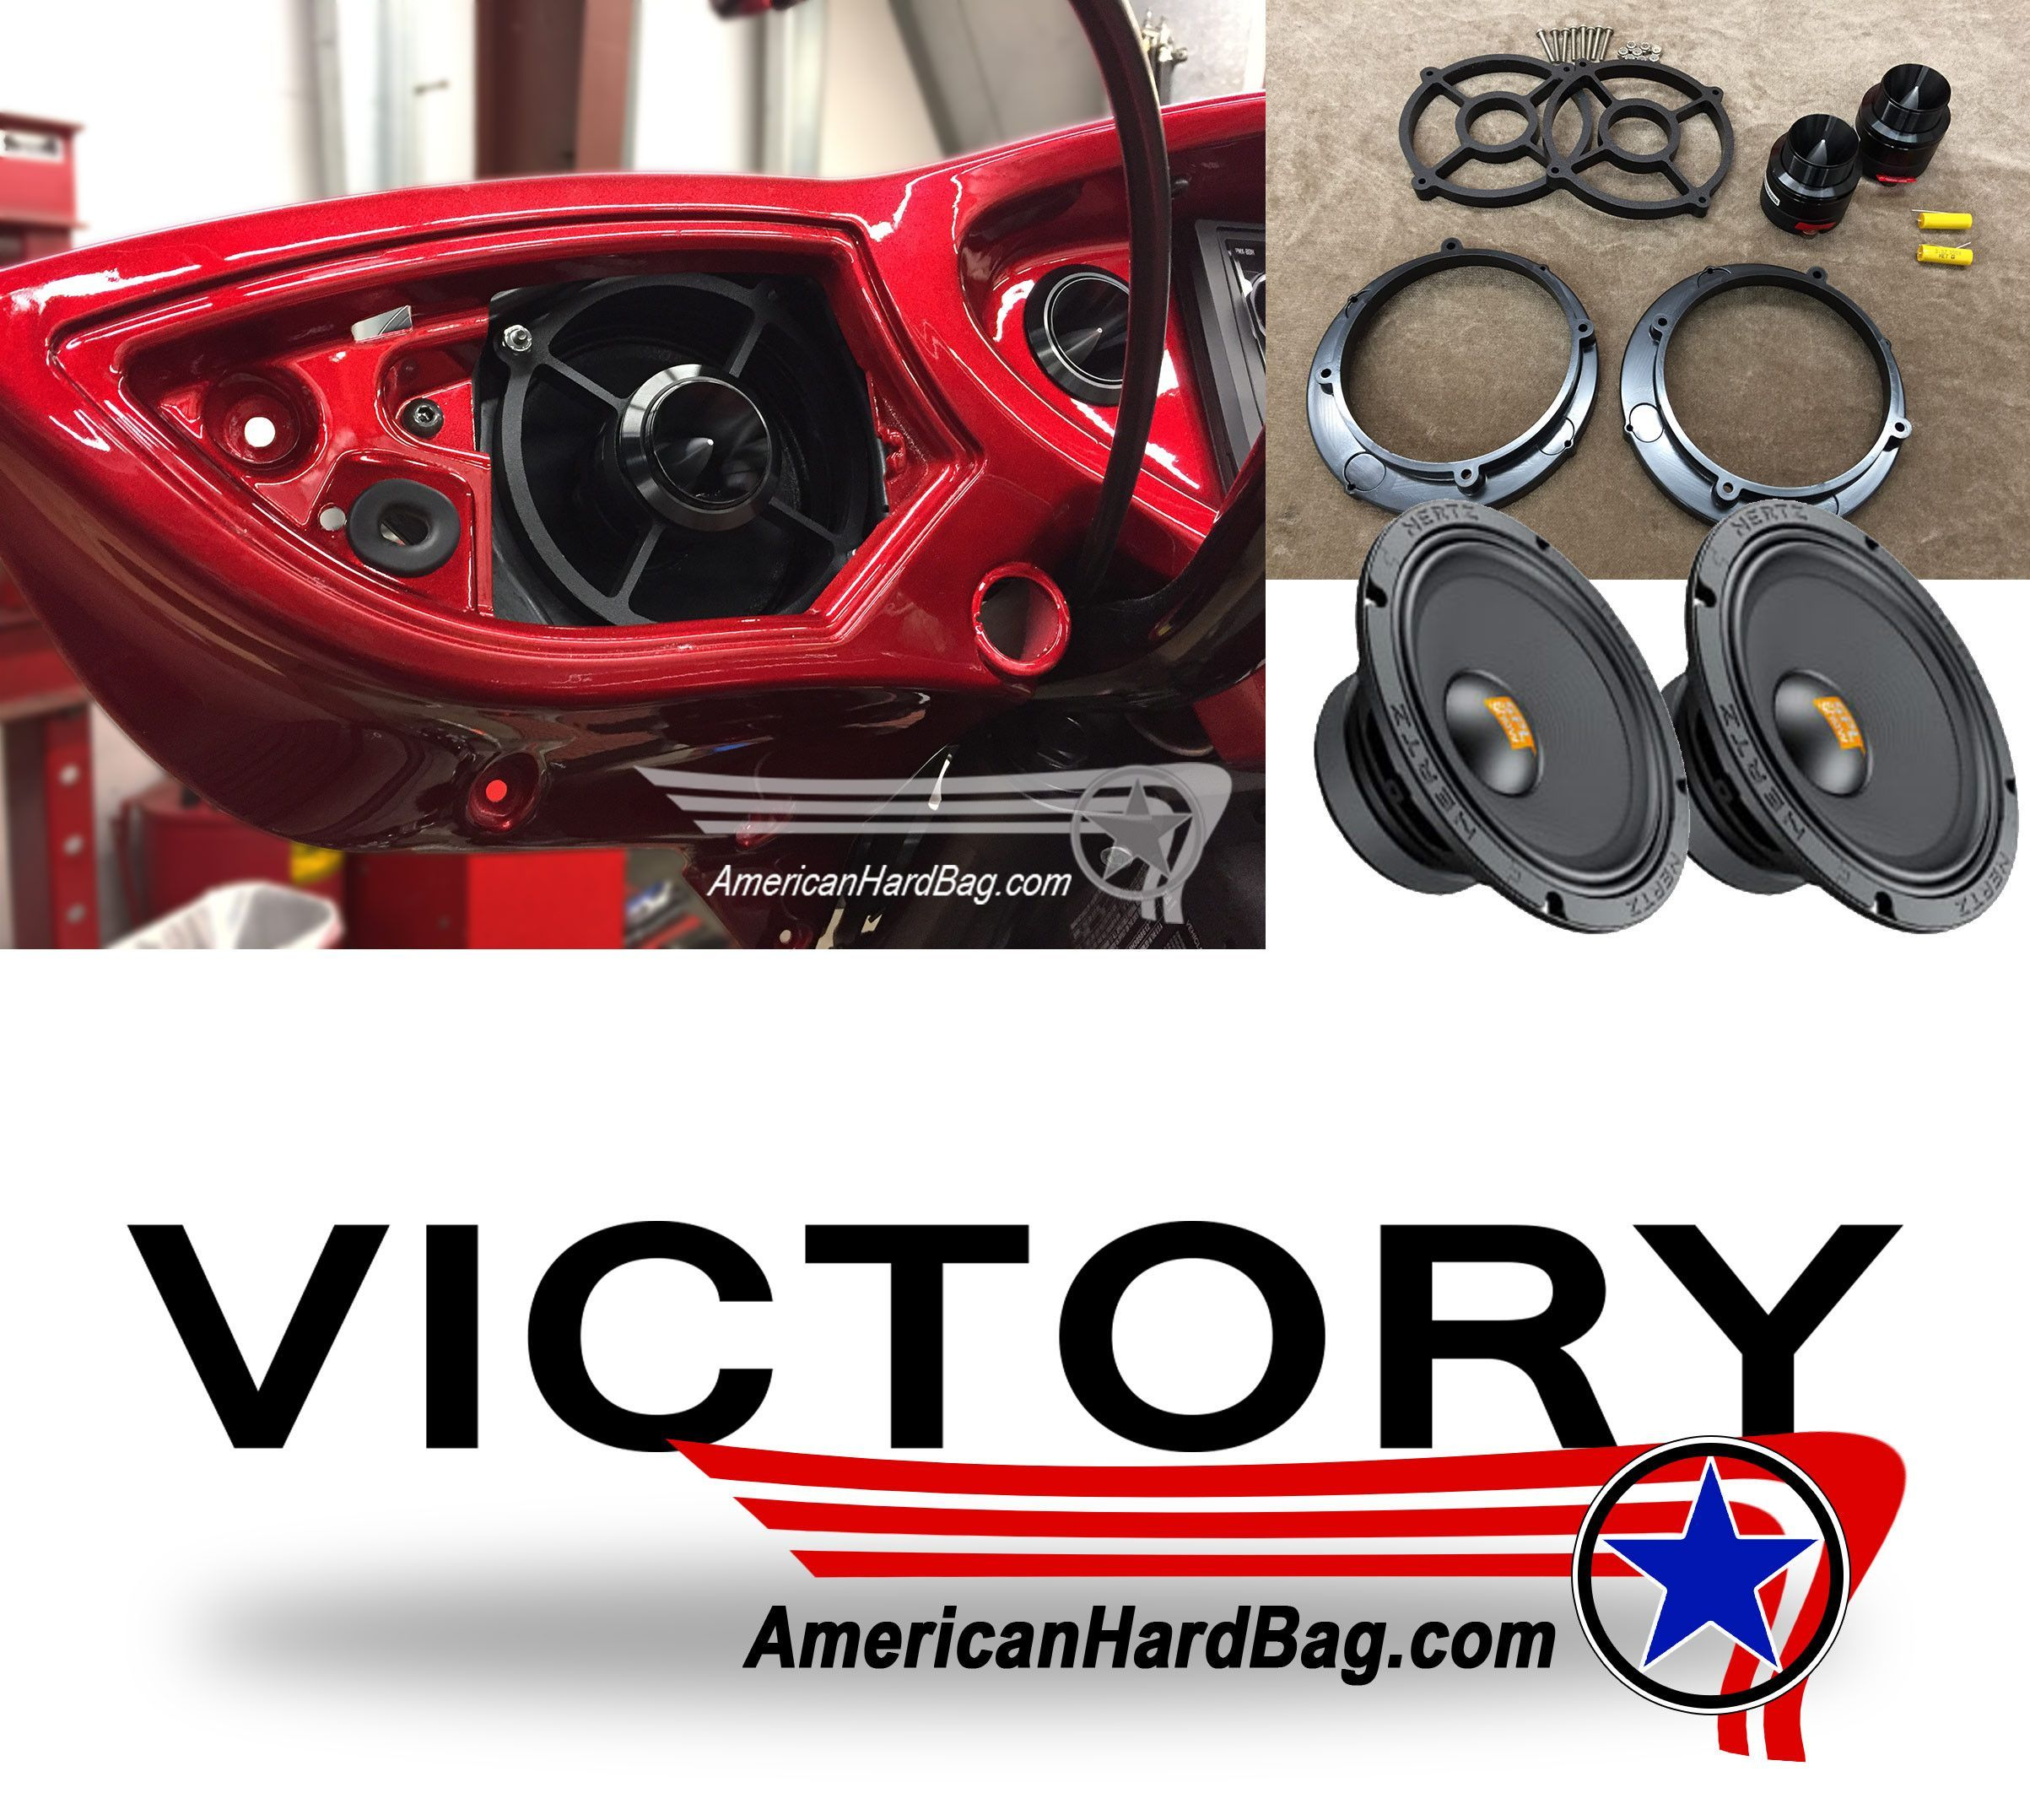 Victory Cross Country Pro Audio Motorcycle Fairing Speaker Kit